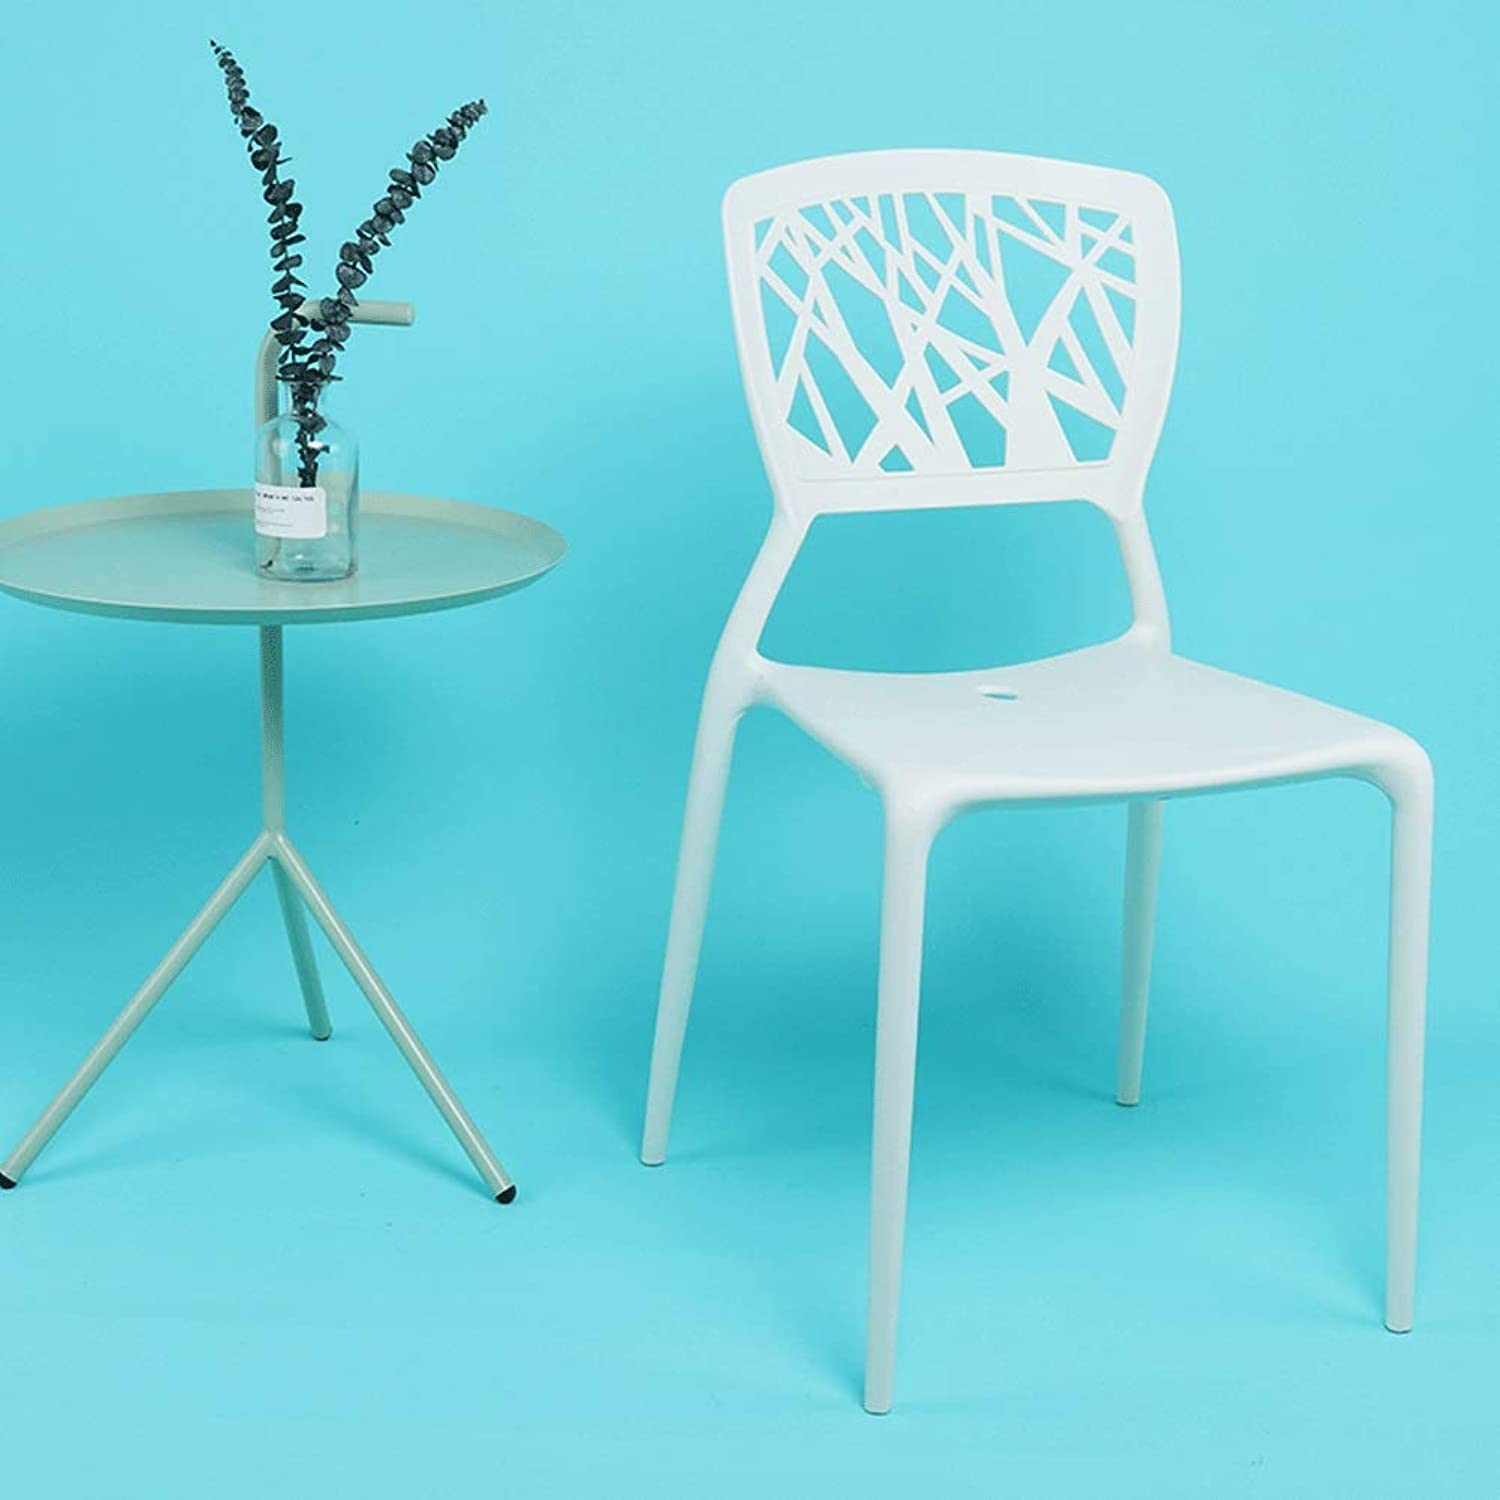 LRZS-Furniture Creative Household Simple Personality Dining Chair, Recreational Chair, Cafe Chair, Office Reception Chair, Hollow Plastic Chair (color   White)